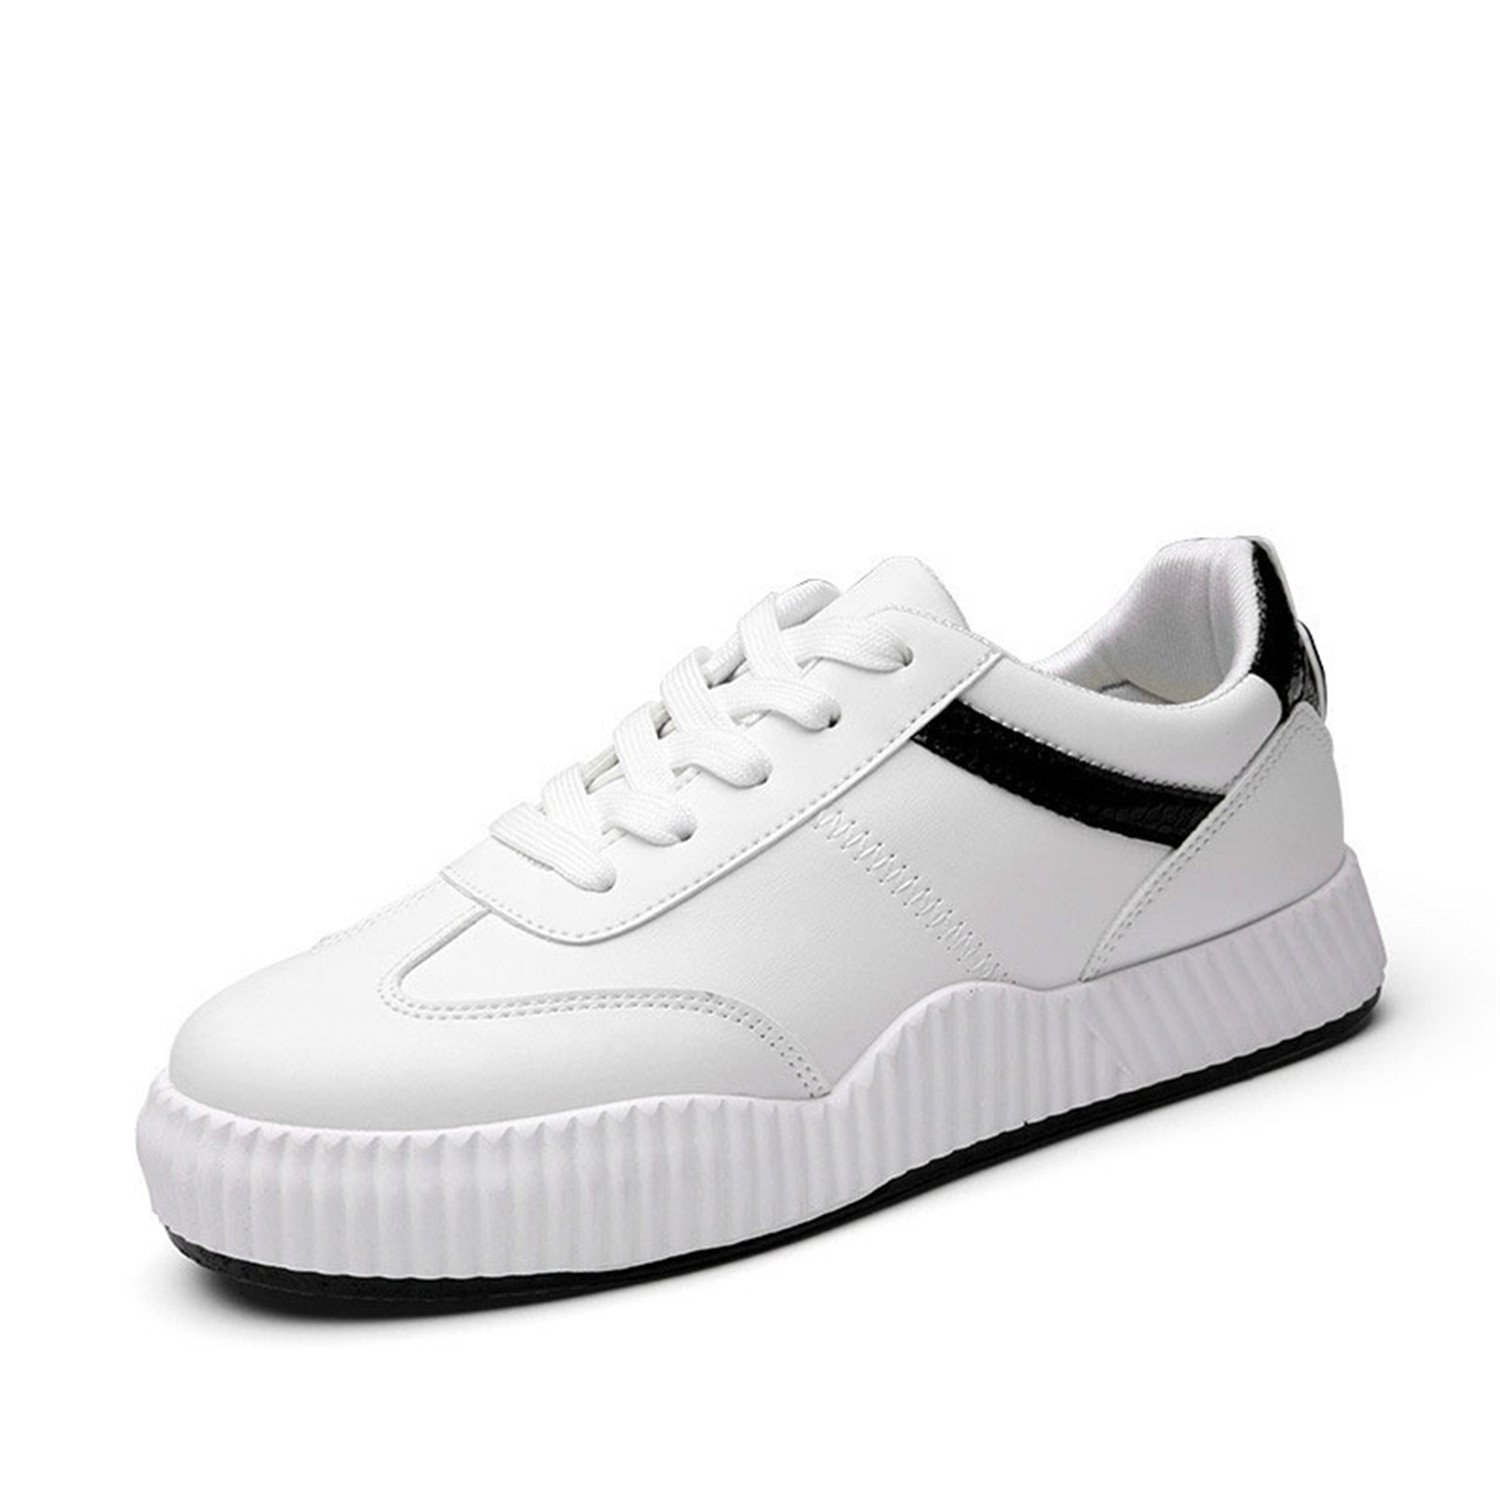 Amazon.com | Feilongzaitianba Students White Shoes Female Wild Casual Shoes Flat Women Shoes Zapatillas Mujer | Flats